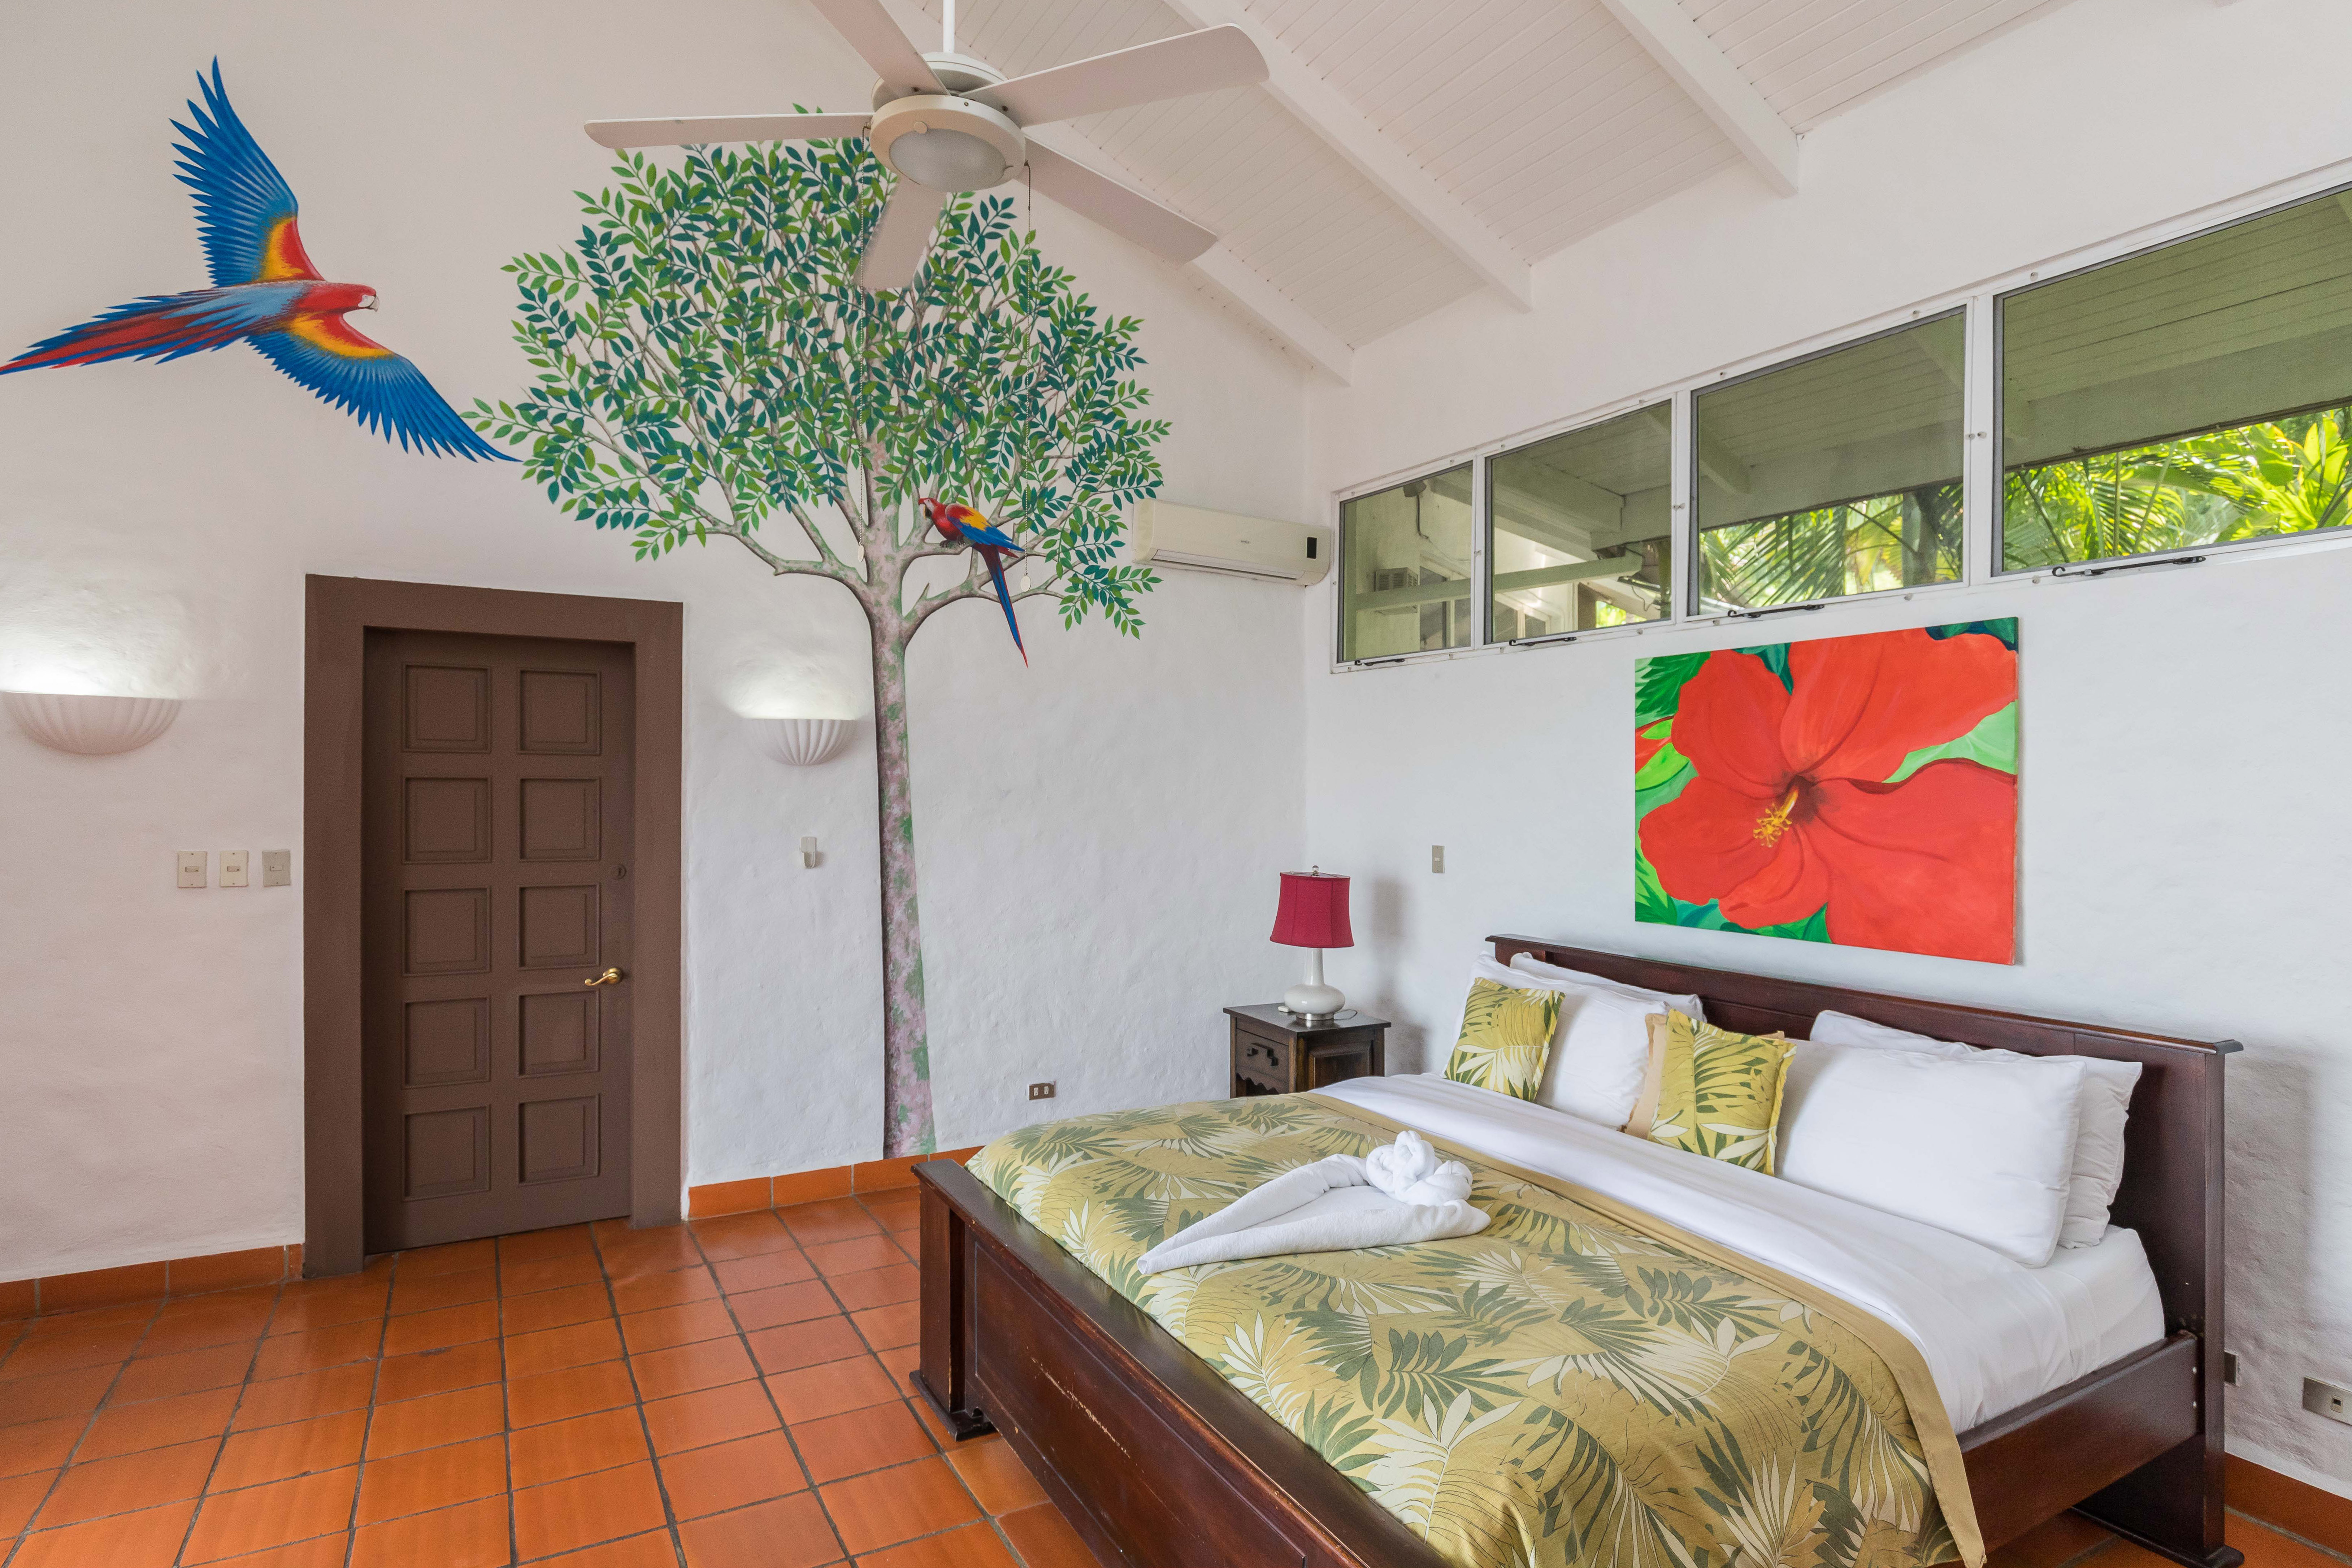 Bedroom 3 with new Scarlet Macaw painting